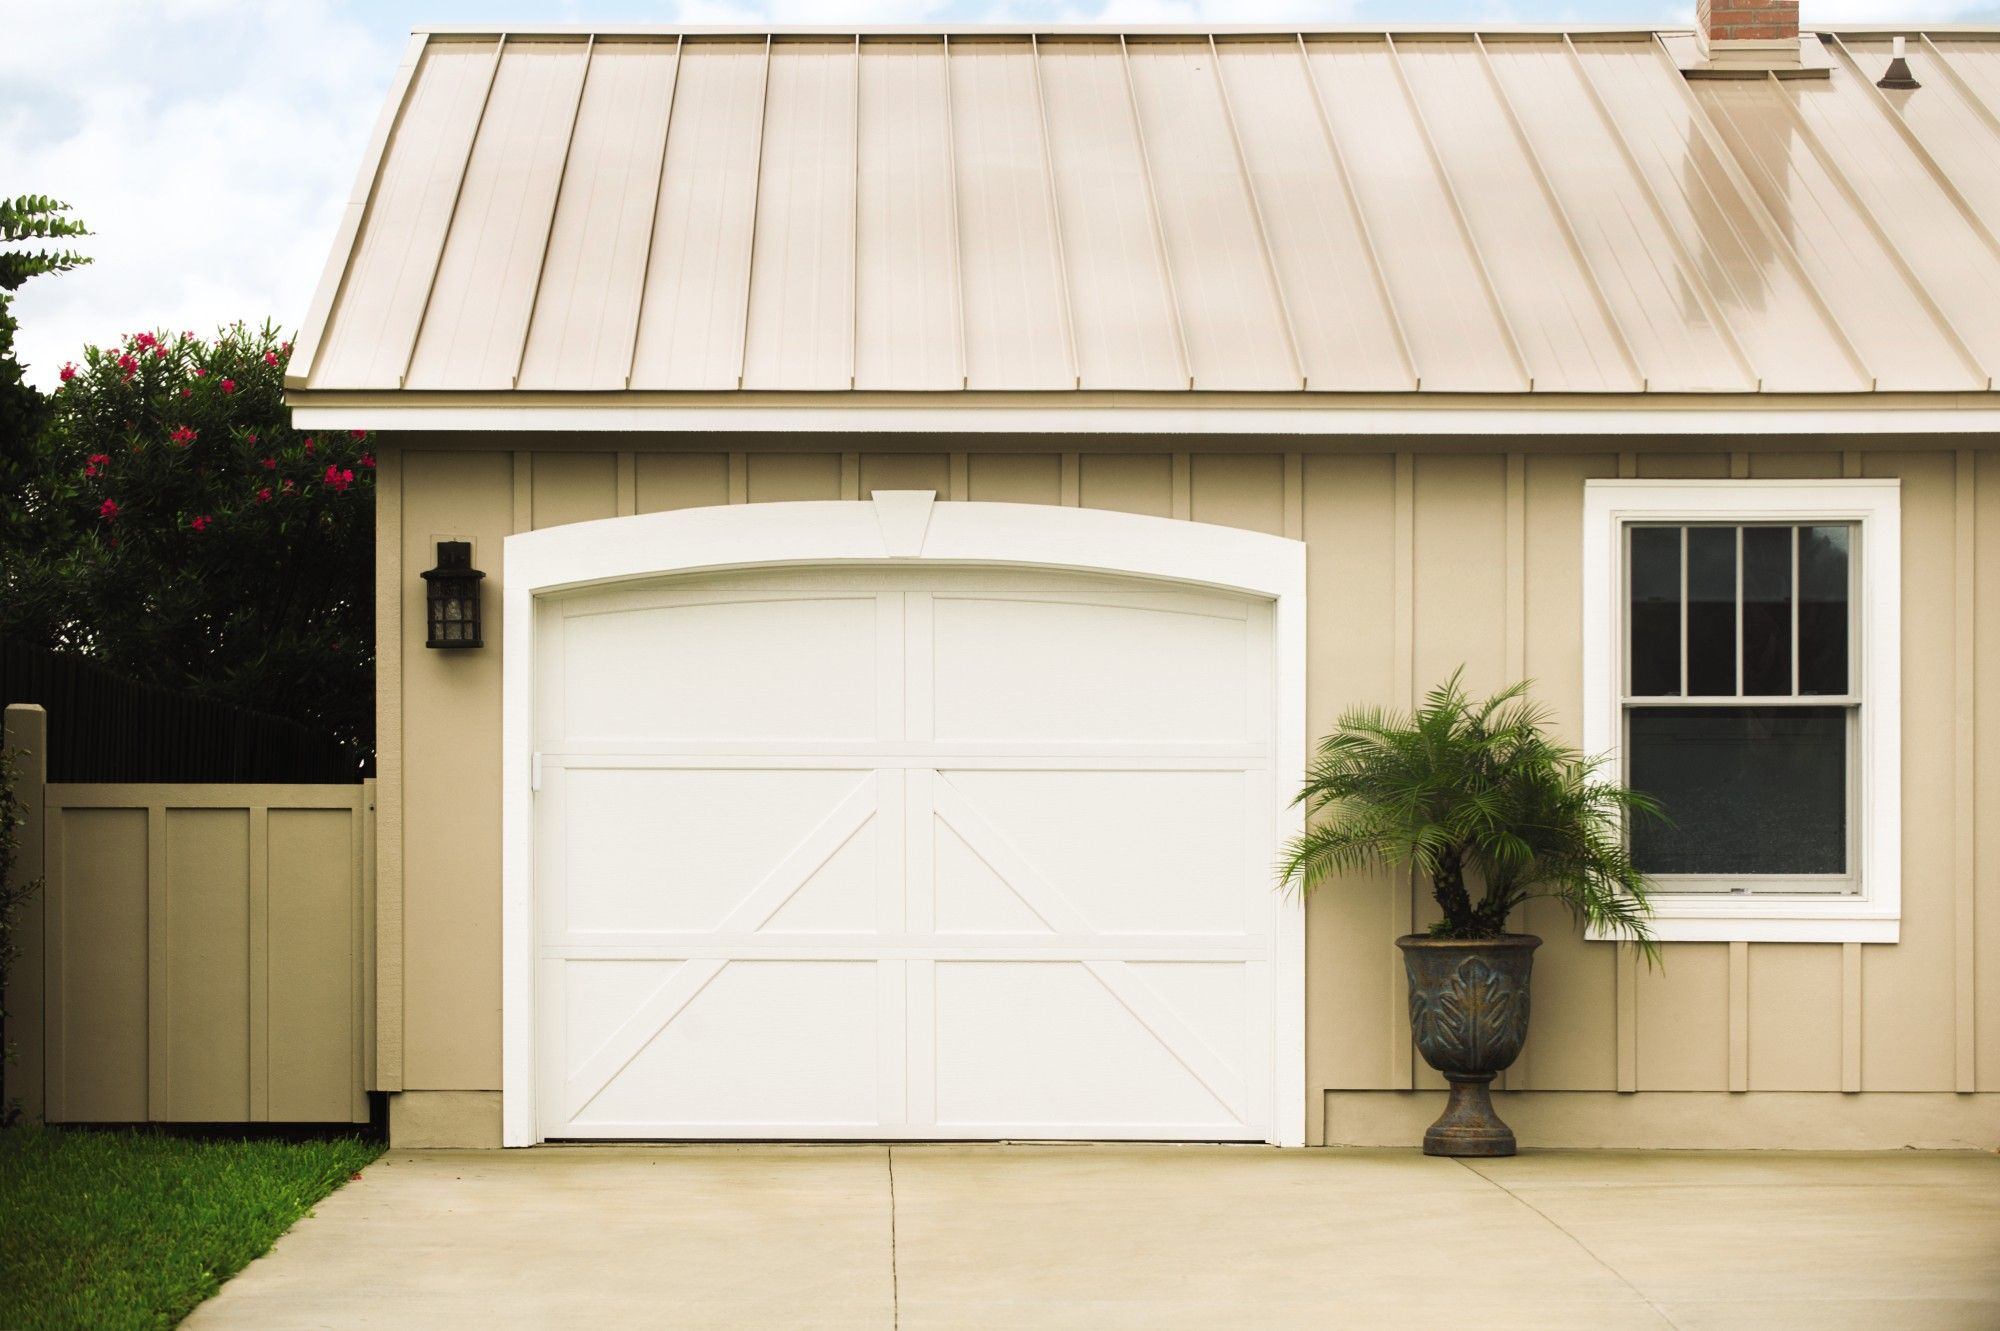 Carriage House Steel Garage Door From Wayne Dalton On Farmhouse Design Home Model 9700 With Charles Ranch House Exterior Metal Roof Houses Garage Door Design